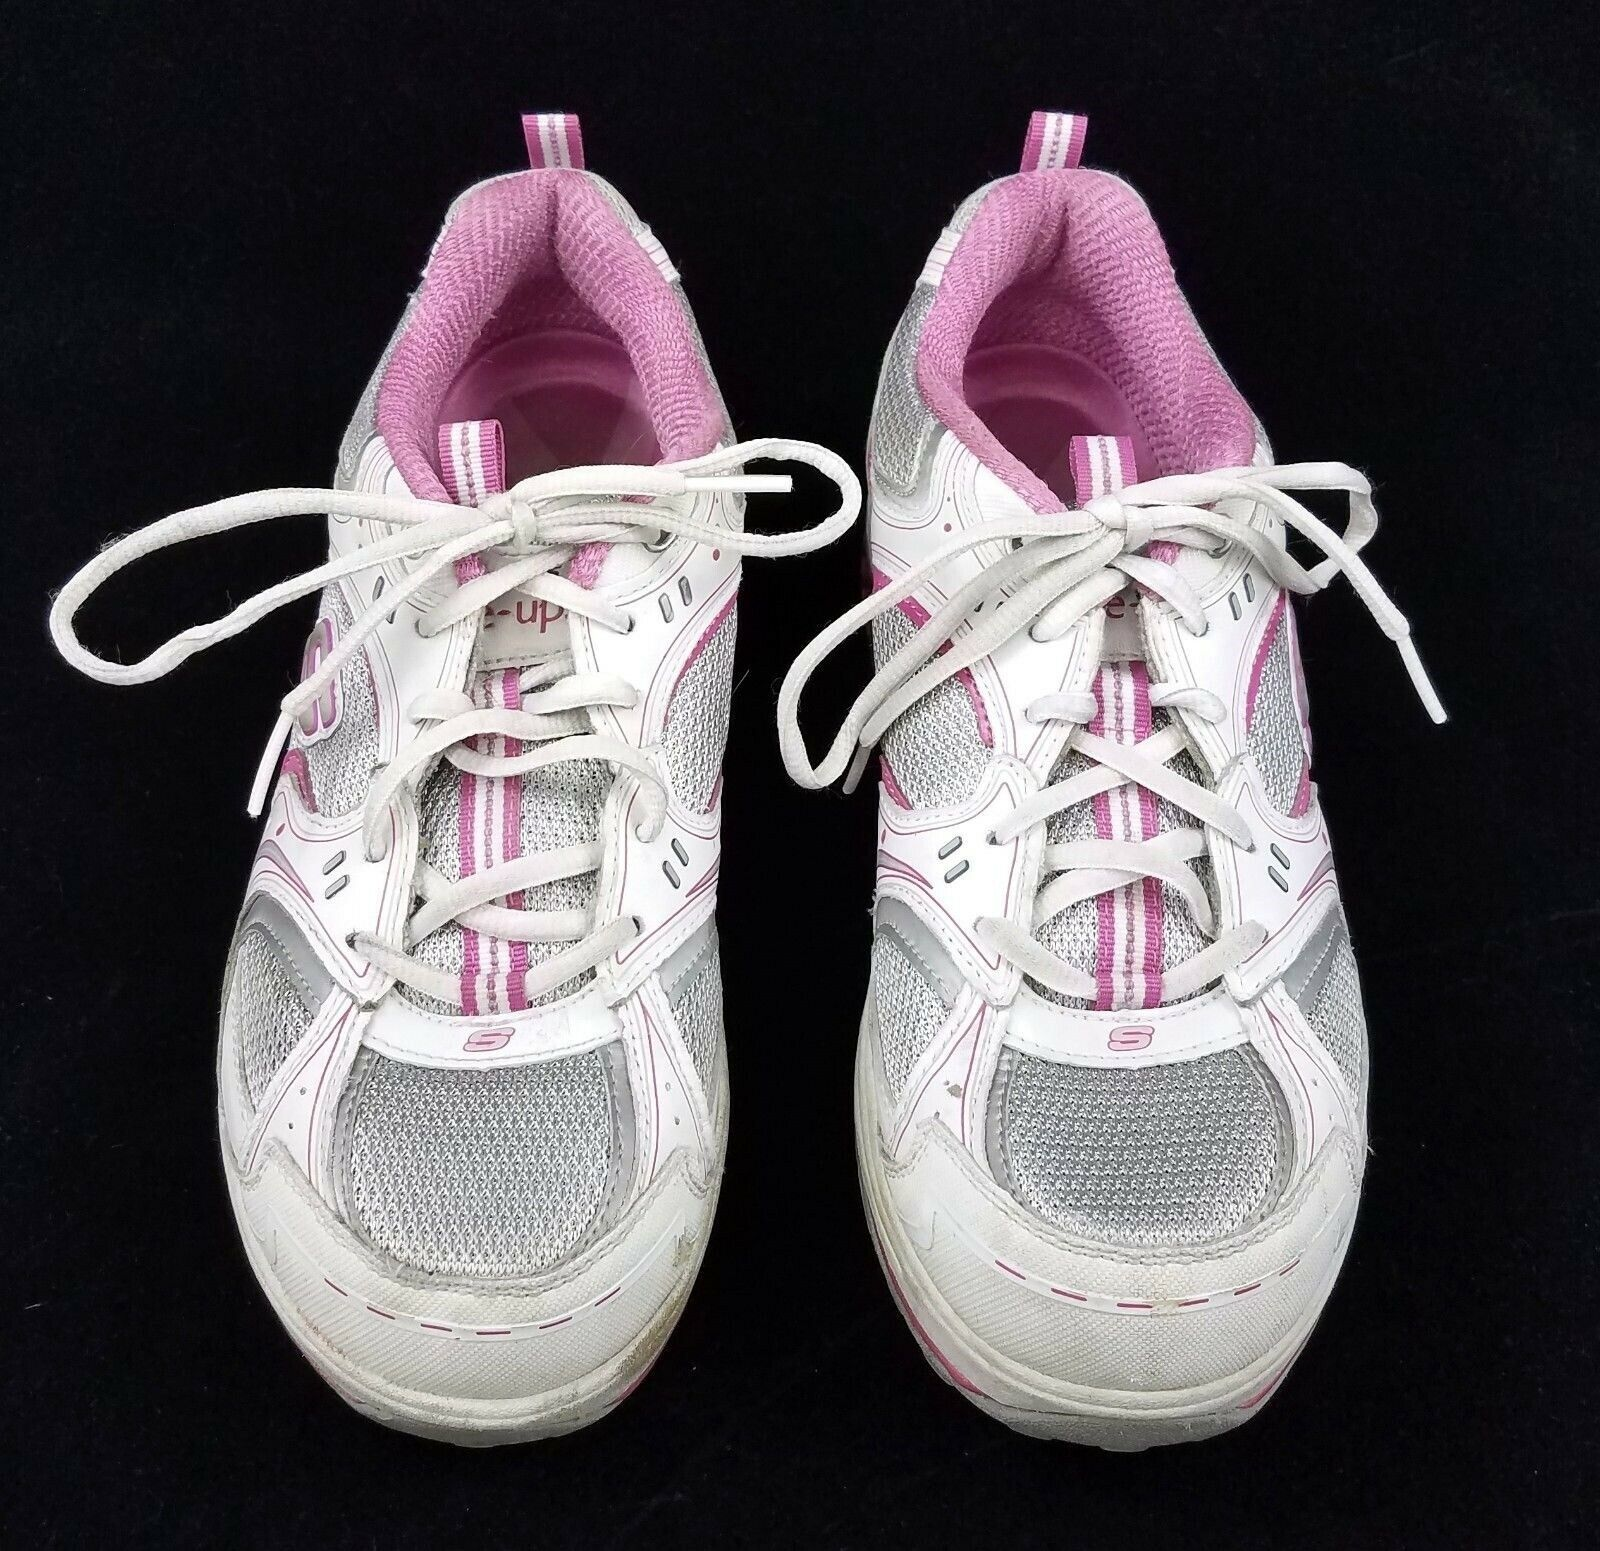 Skechers Shape Ups Pink Walking Toning Shoes Sneakers Womens 9 Breast Cancer